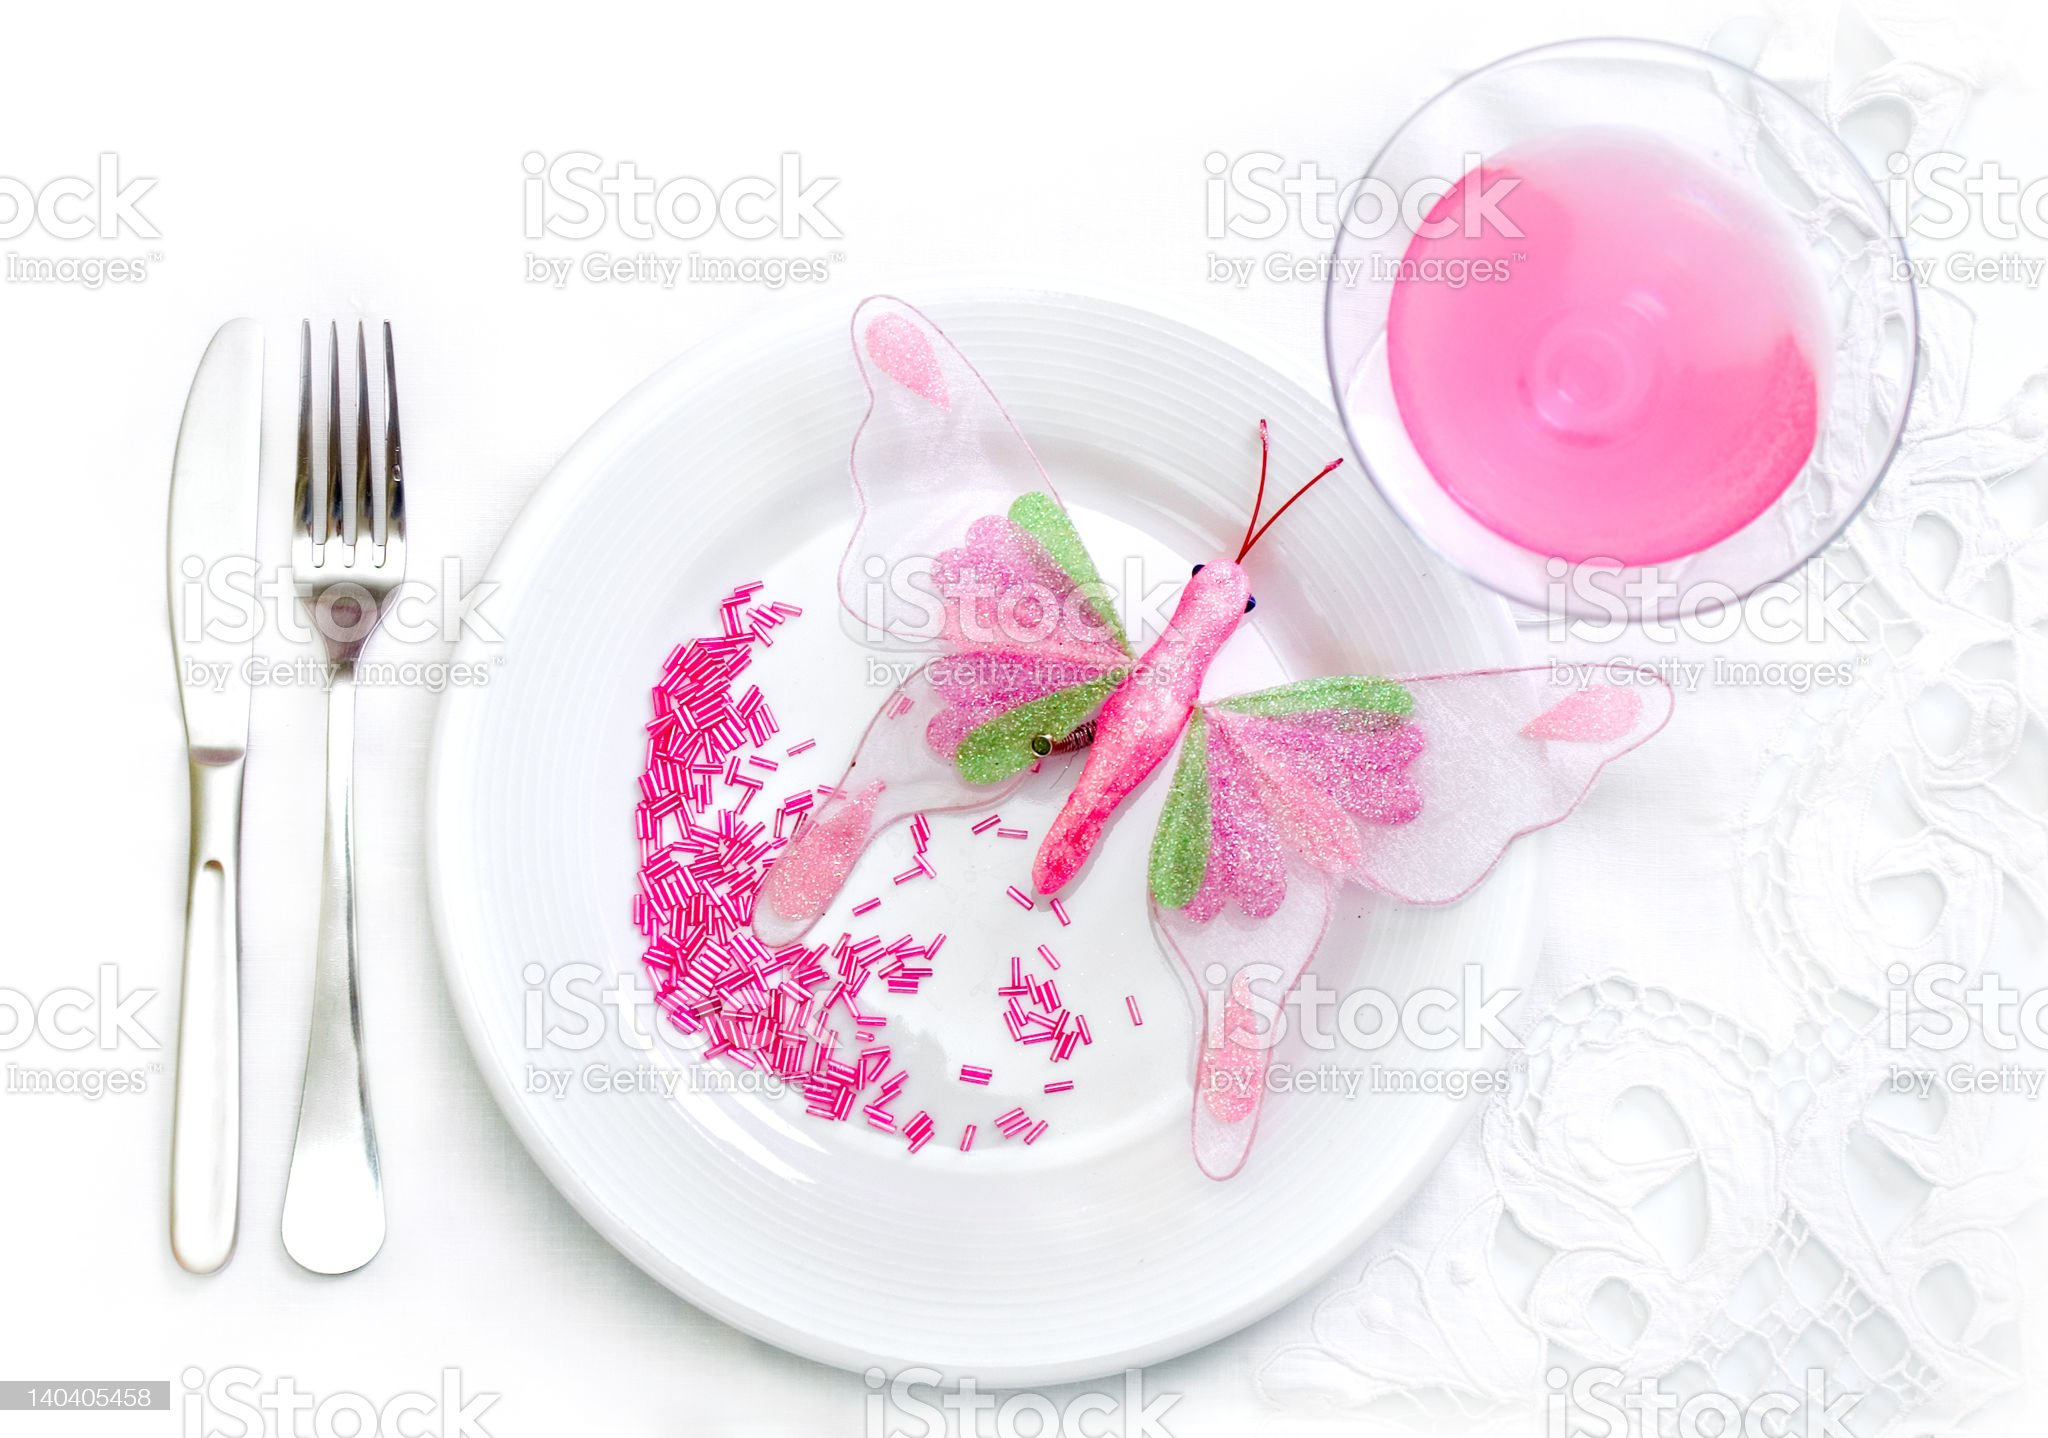 Glamour food concept royalty-free stock photo